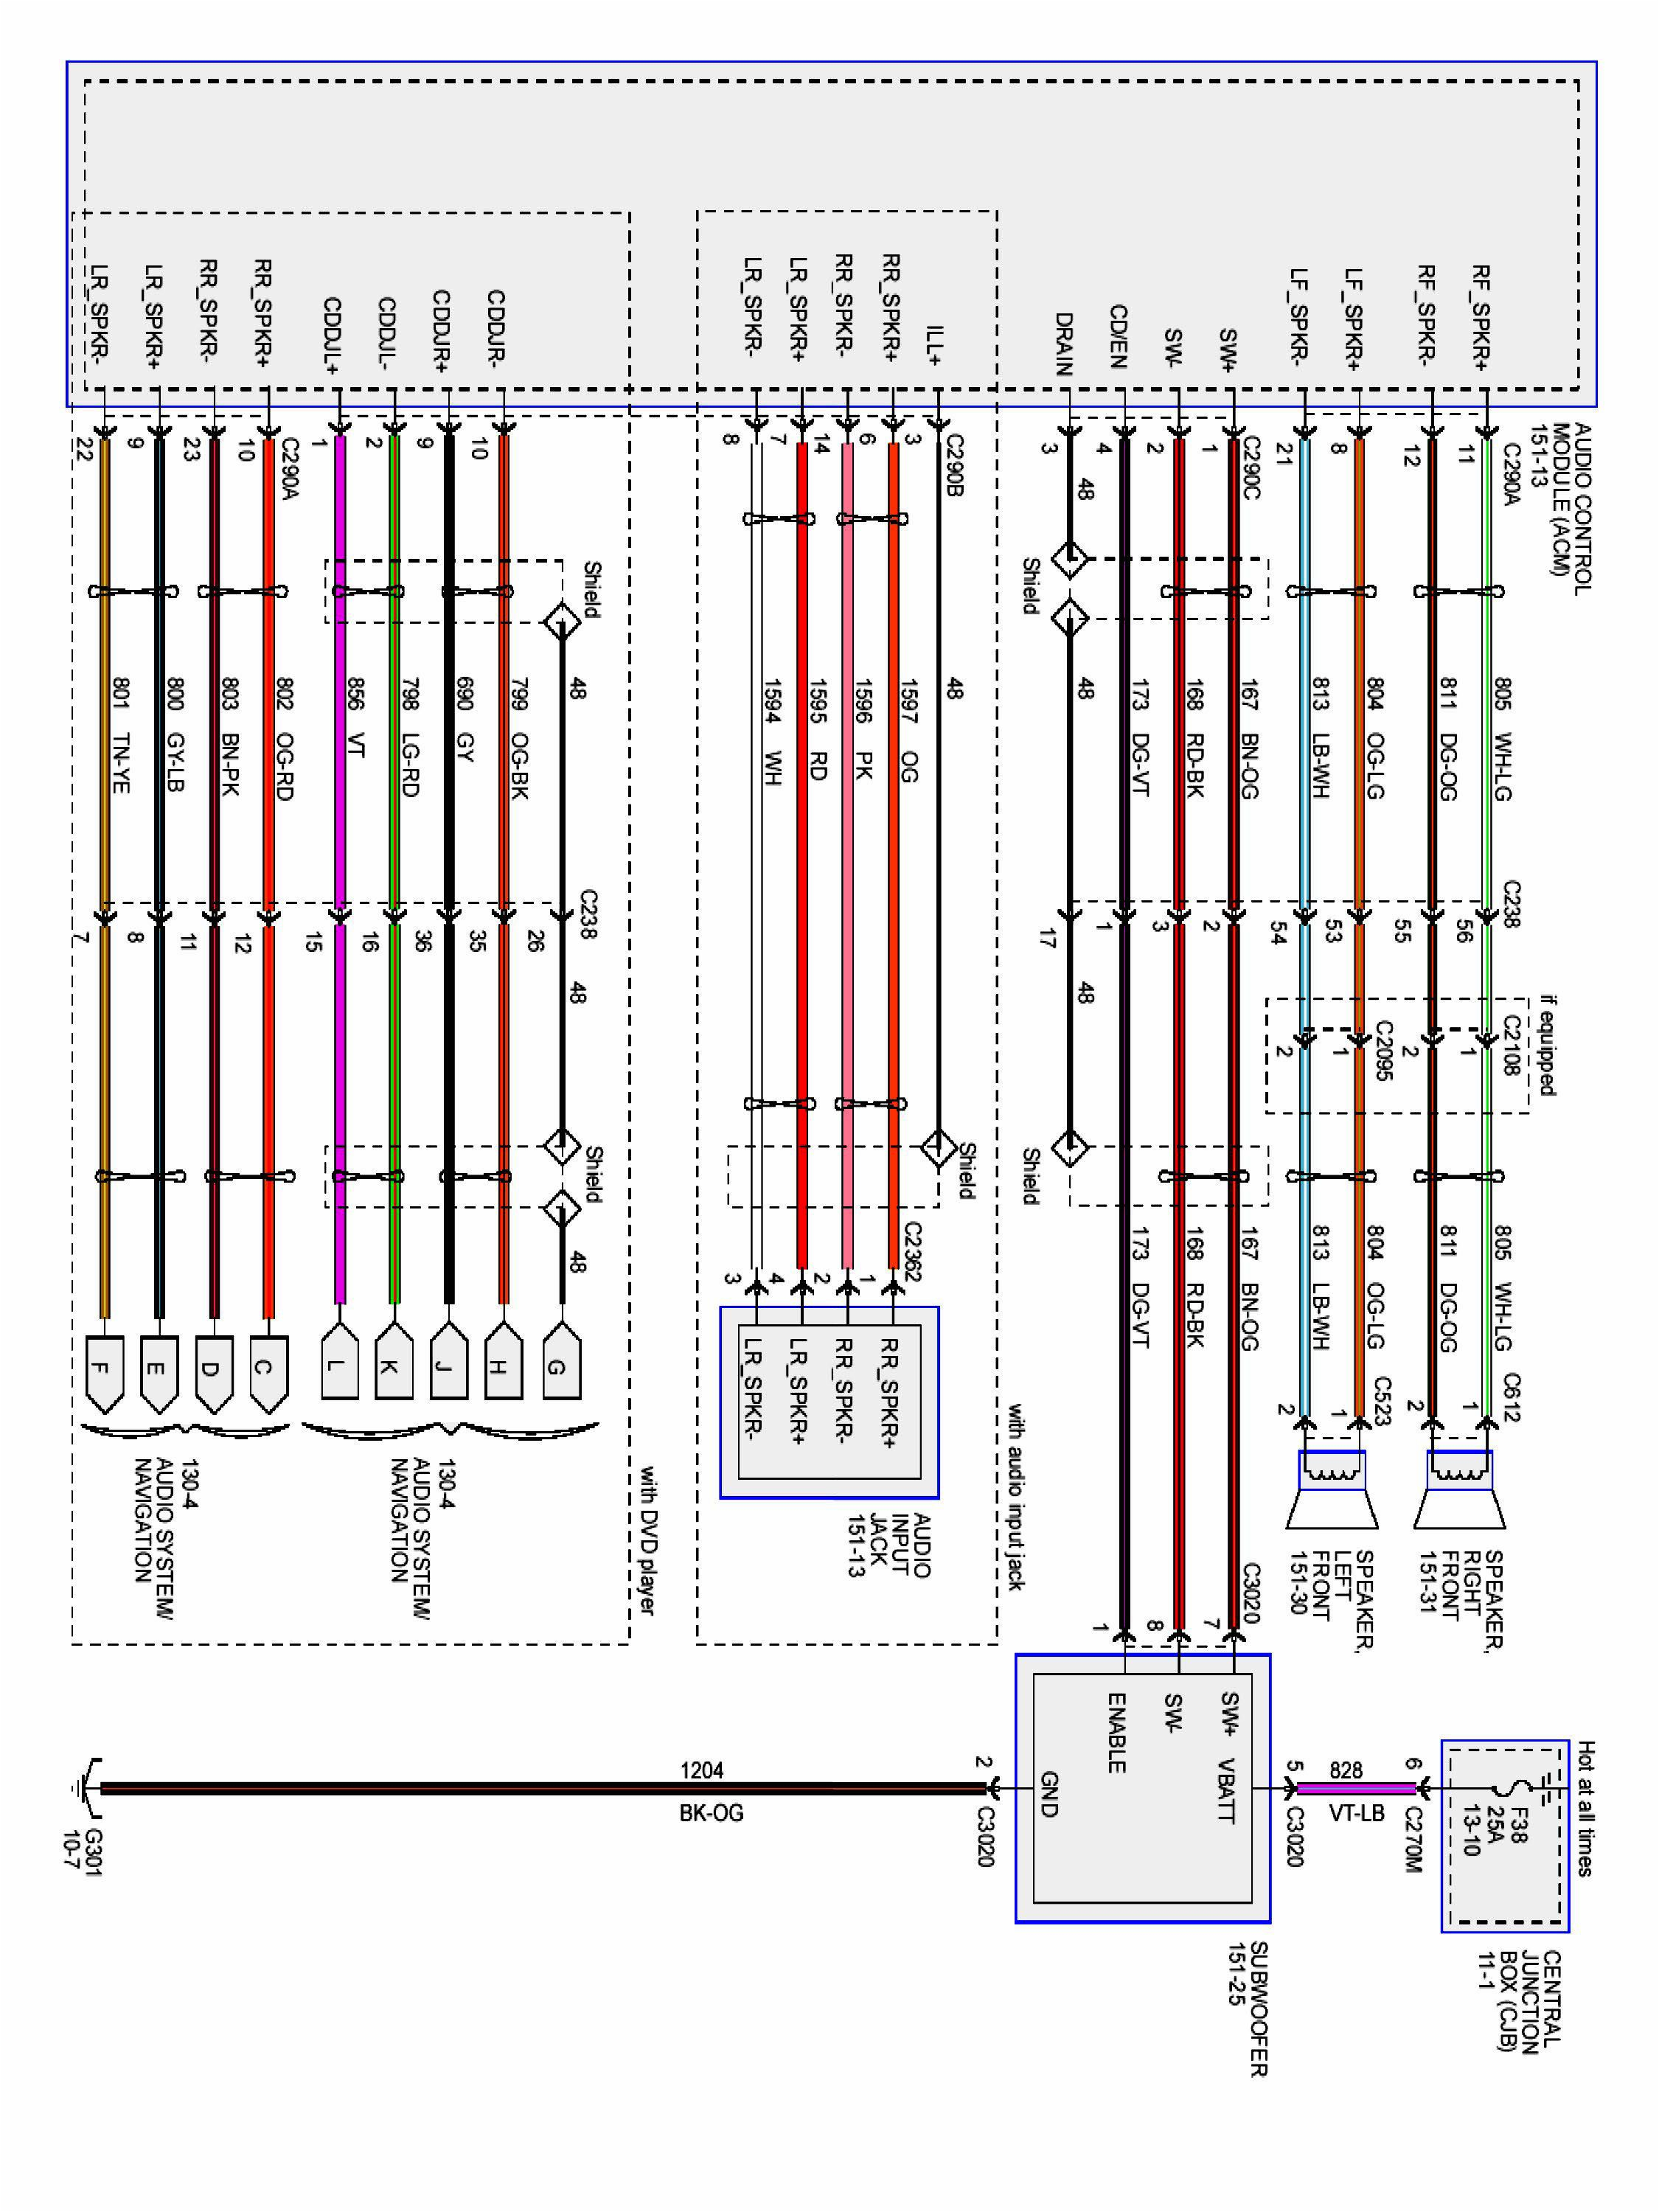 2015 ford F150 Wiring Diagram ford F 150 2 7l Wiring Harness Diagram Wiring Diagrams Long